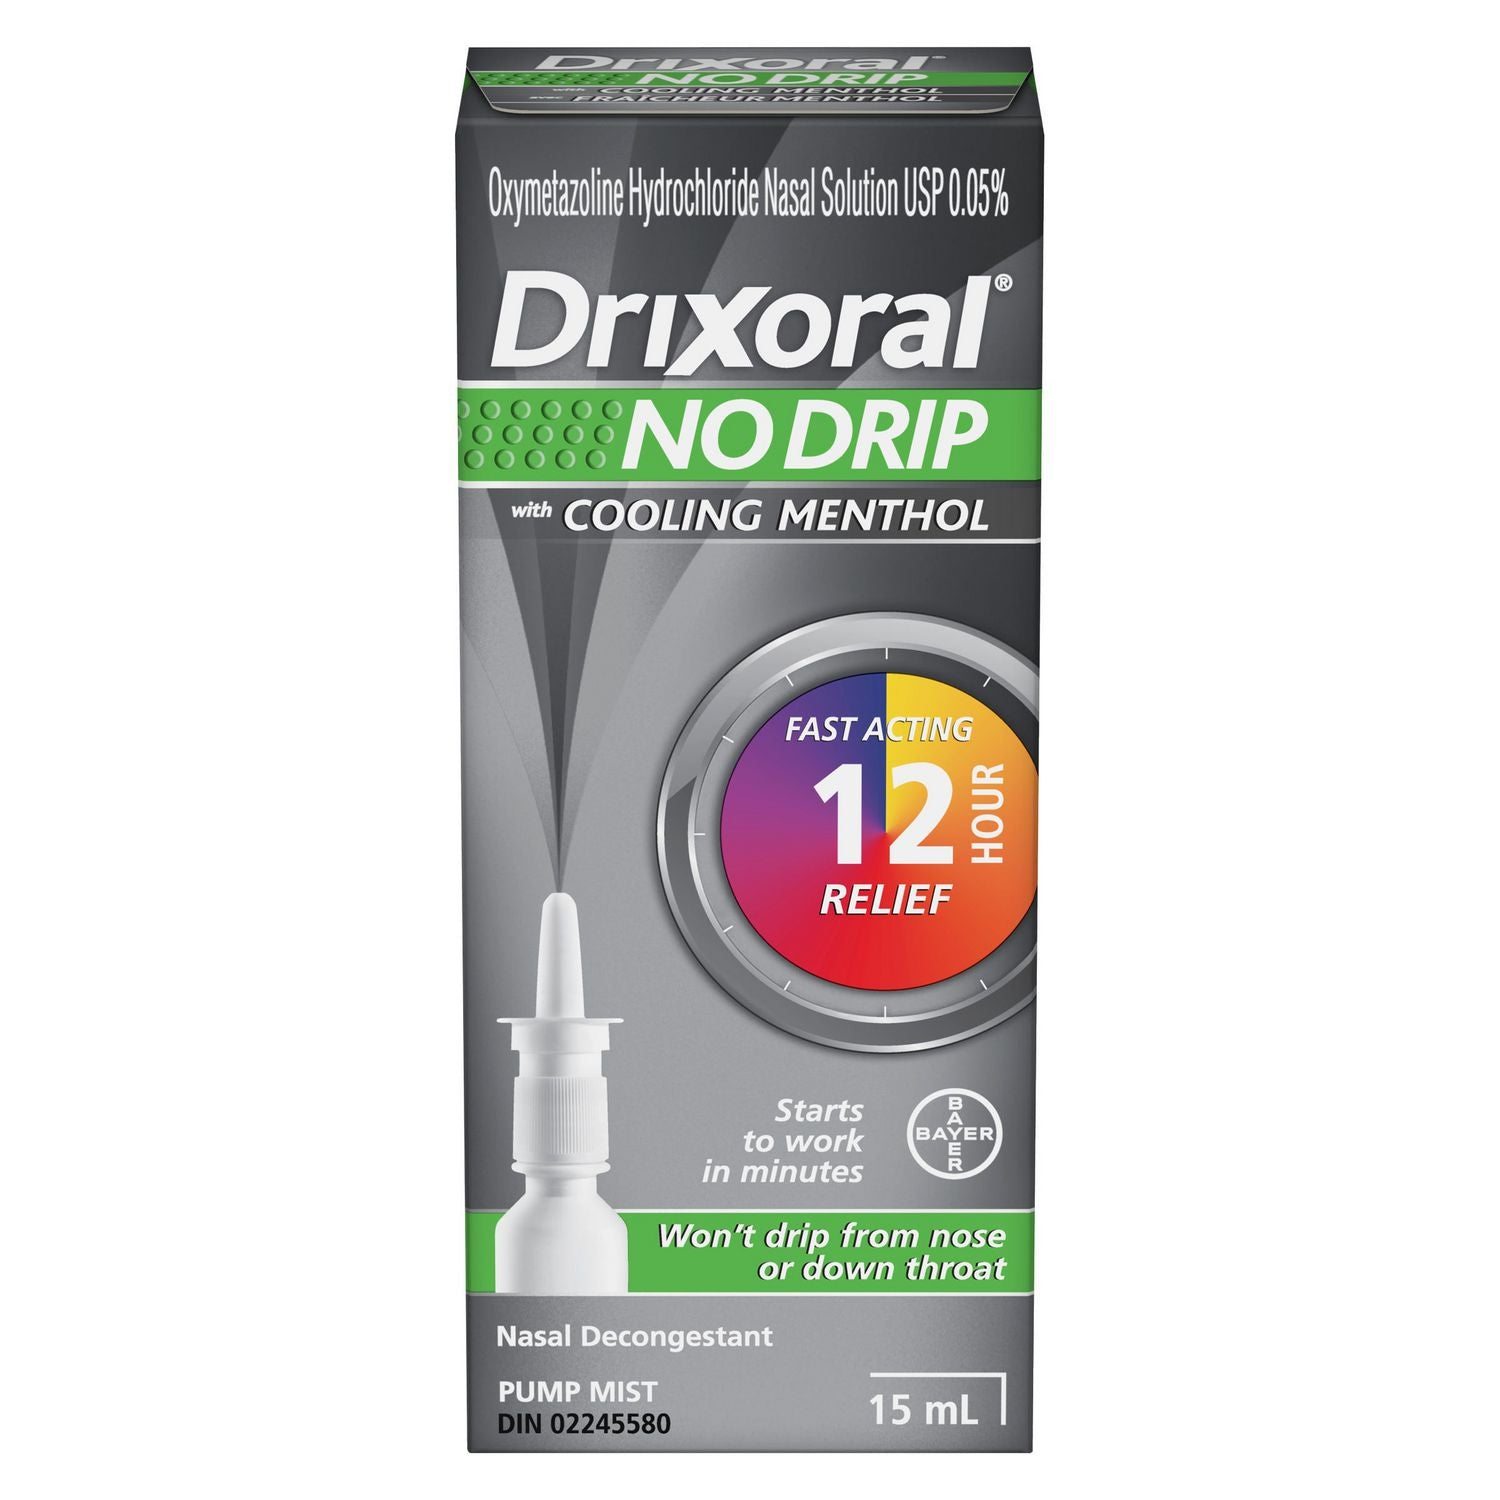 Drixoral No Drip with Cooling Menthol 15mL